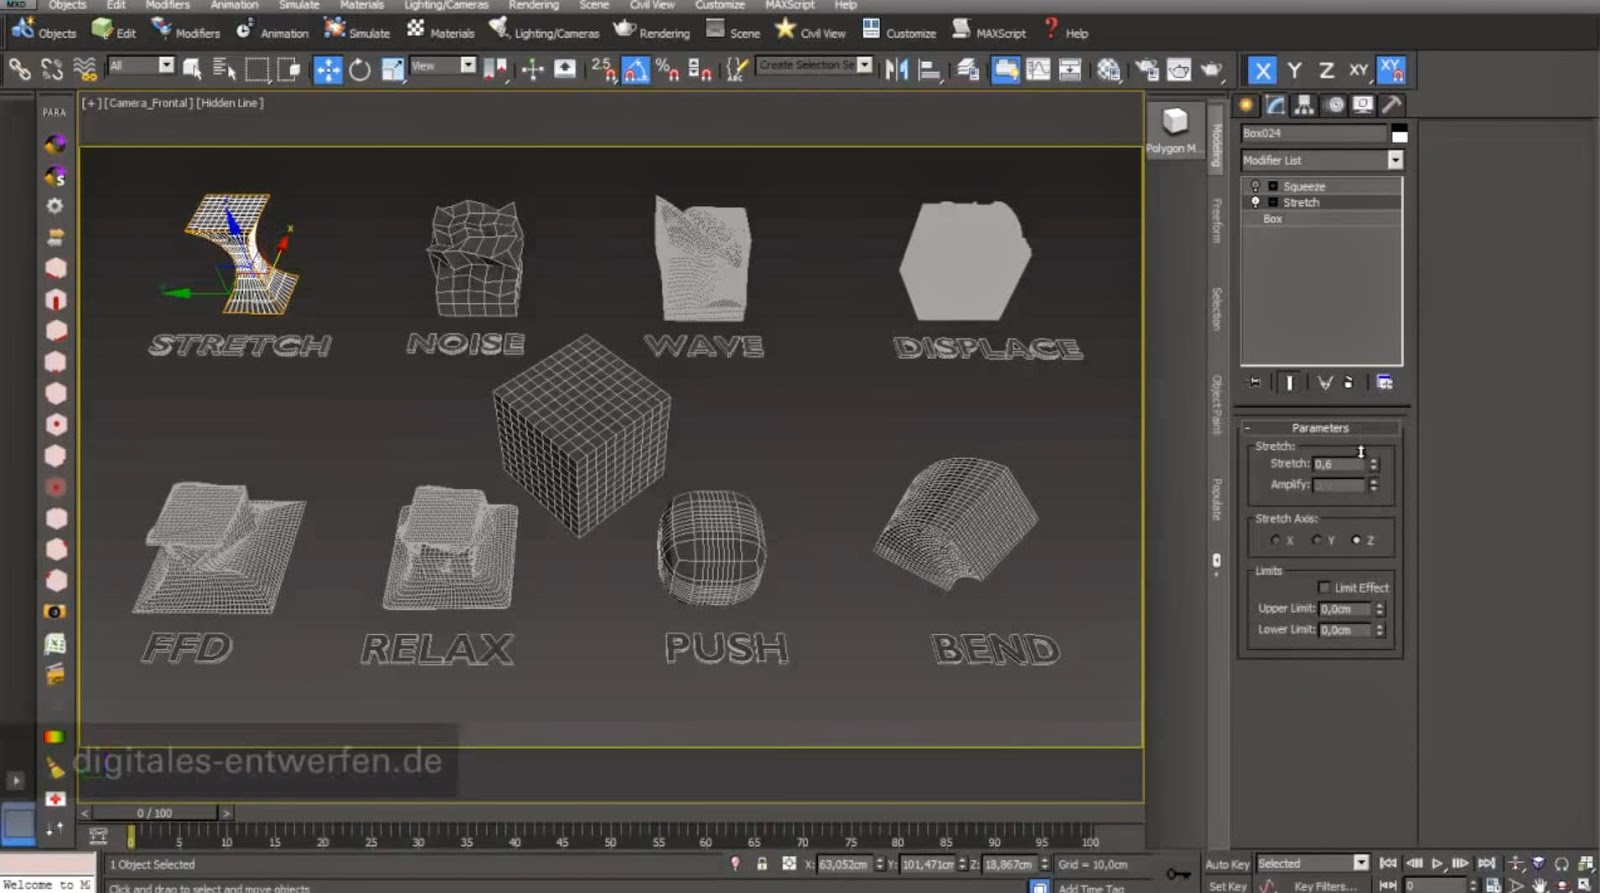 Parametric modifier in 3ds max cg tutorial for 3ds max design